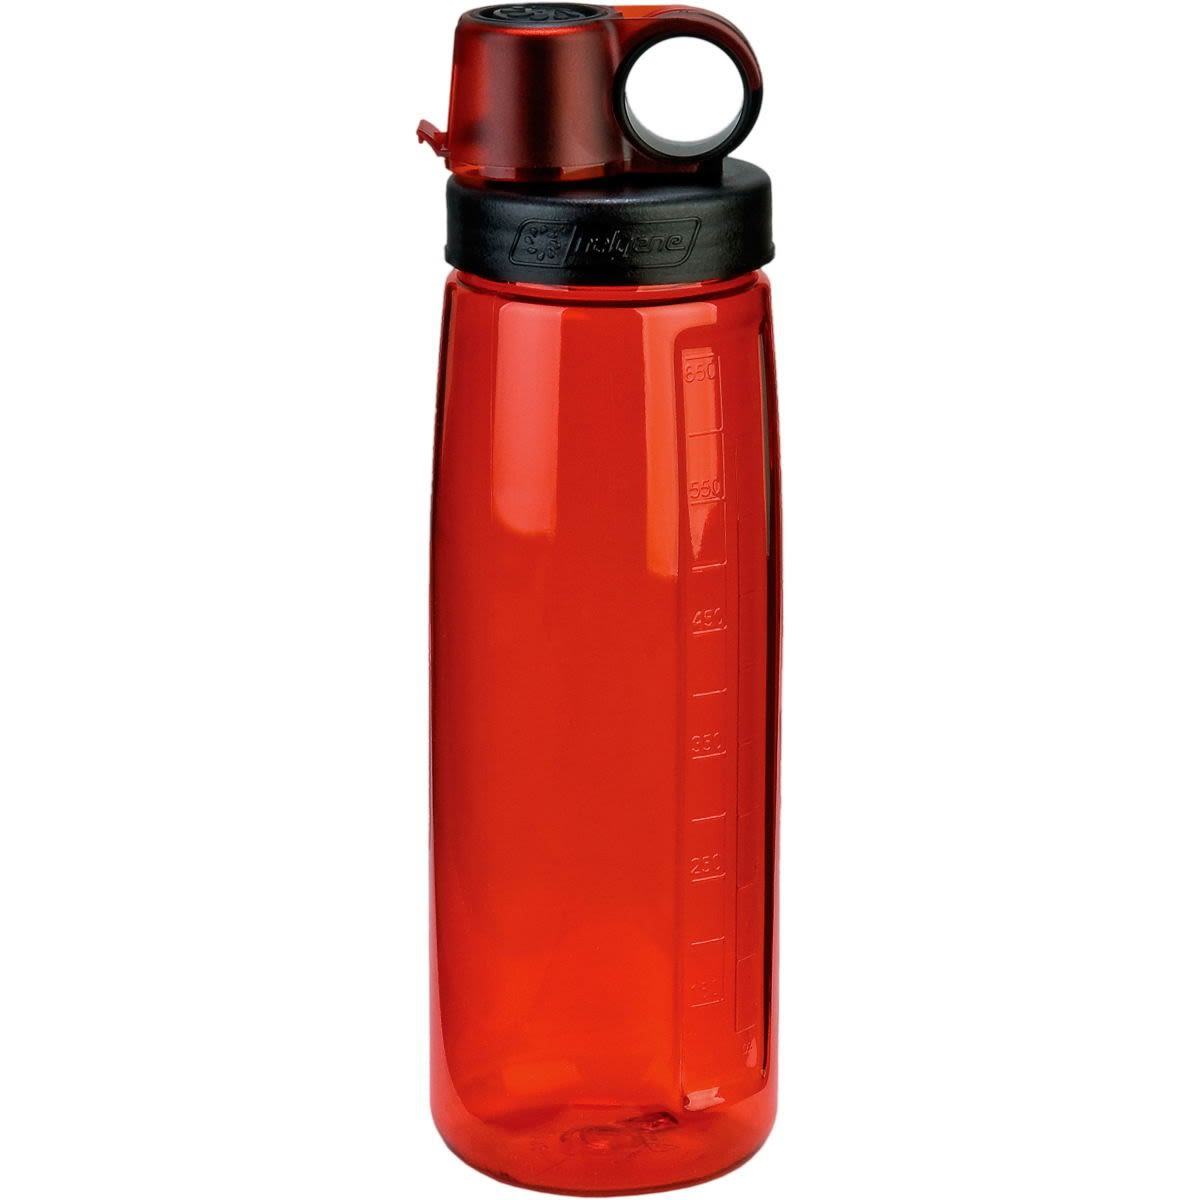 Trinkflasche Everyday Otg - 750ml - Rot